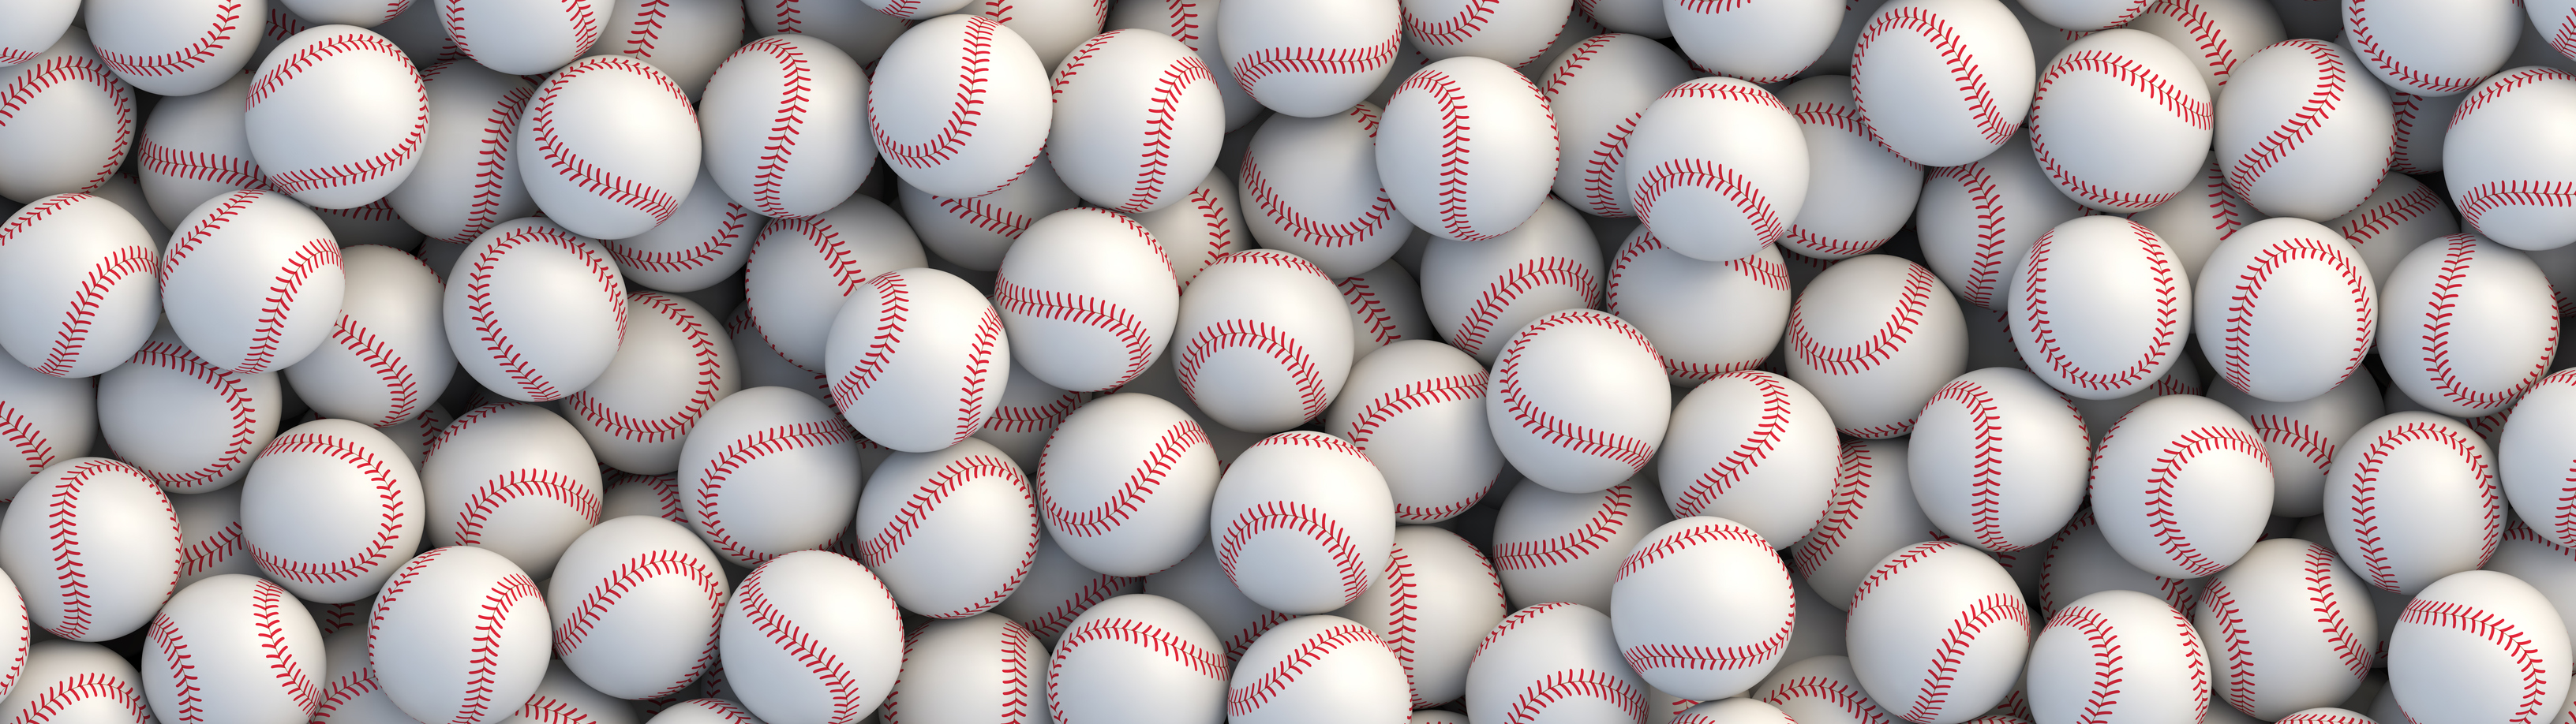 Baseball balls background. Many white baseball balls with red stitching lying in a pile. Realistic vector background